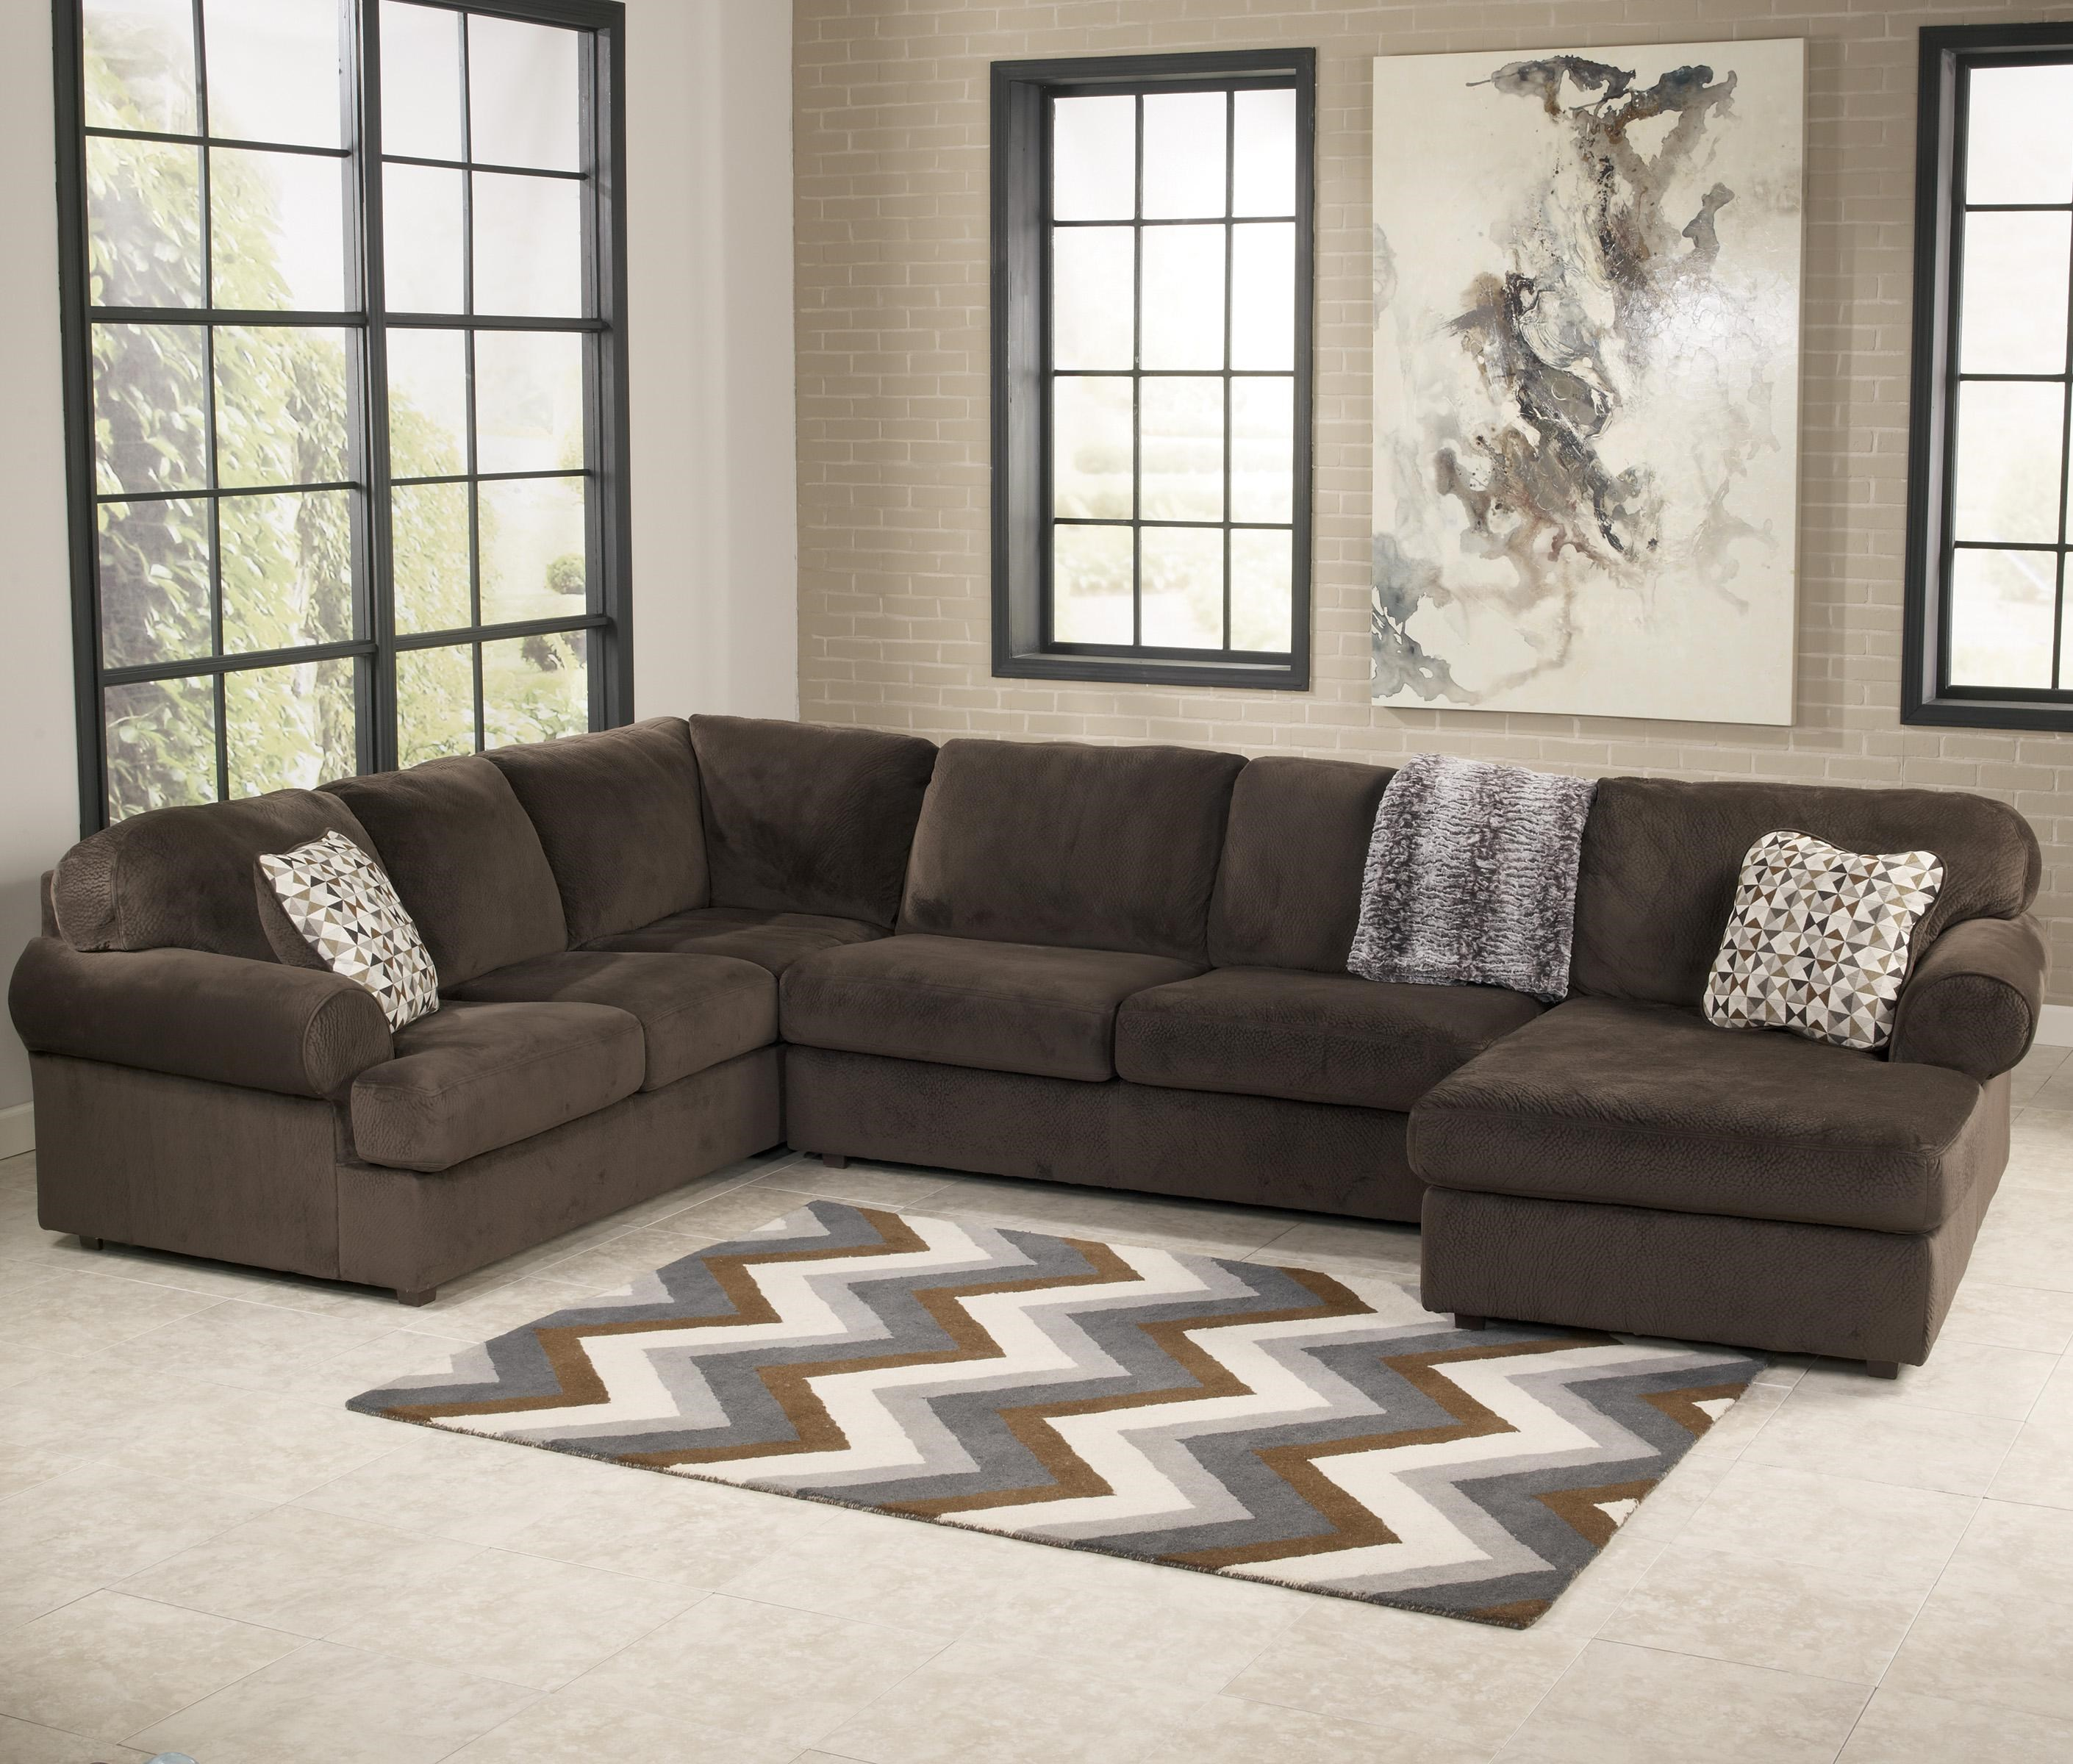 Furniture Chaise Jessa Place Chocolate Casual Sectional Sofa With Right Chaise By Signature Design By Ashley At Turk Furniture